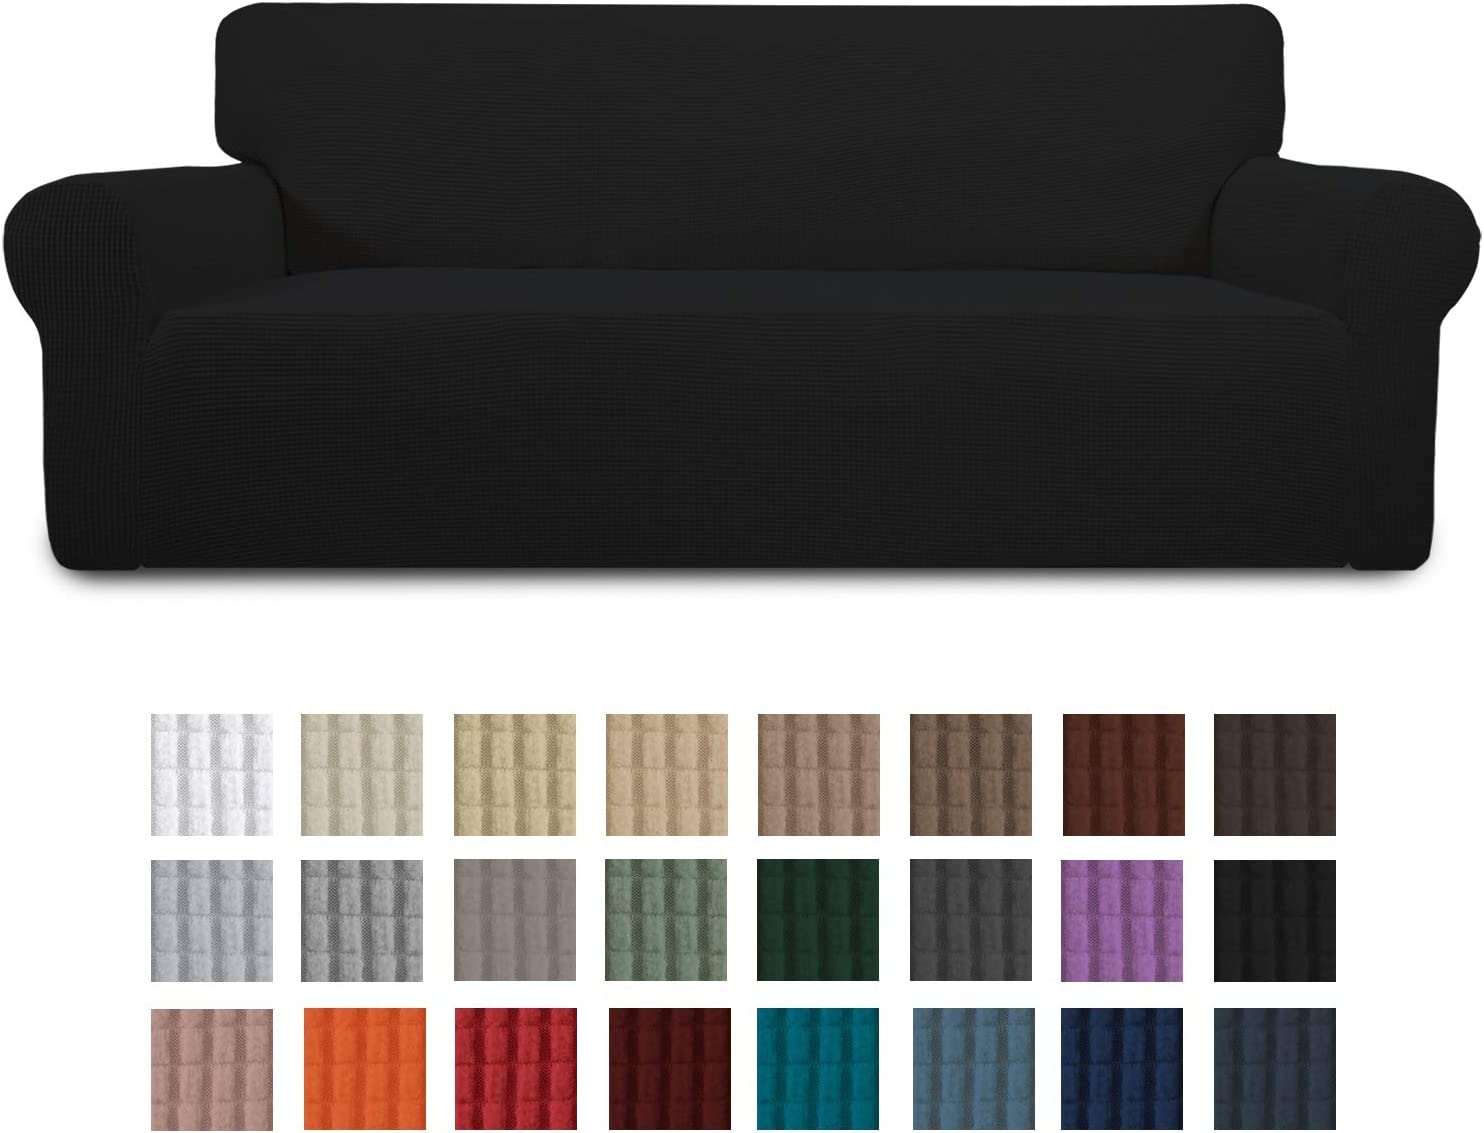 Easy-Going Stretch Sofa Slipcover 1-Piece Couch Sofa Cover Furniture Protector Soft with Elastic Bottom for Kids, Spandex Jacquard Fabric Small Checks (Large, Black)